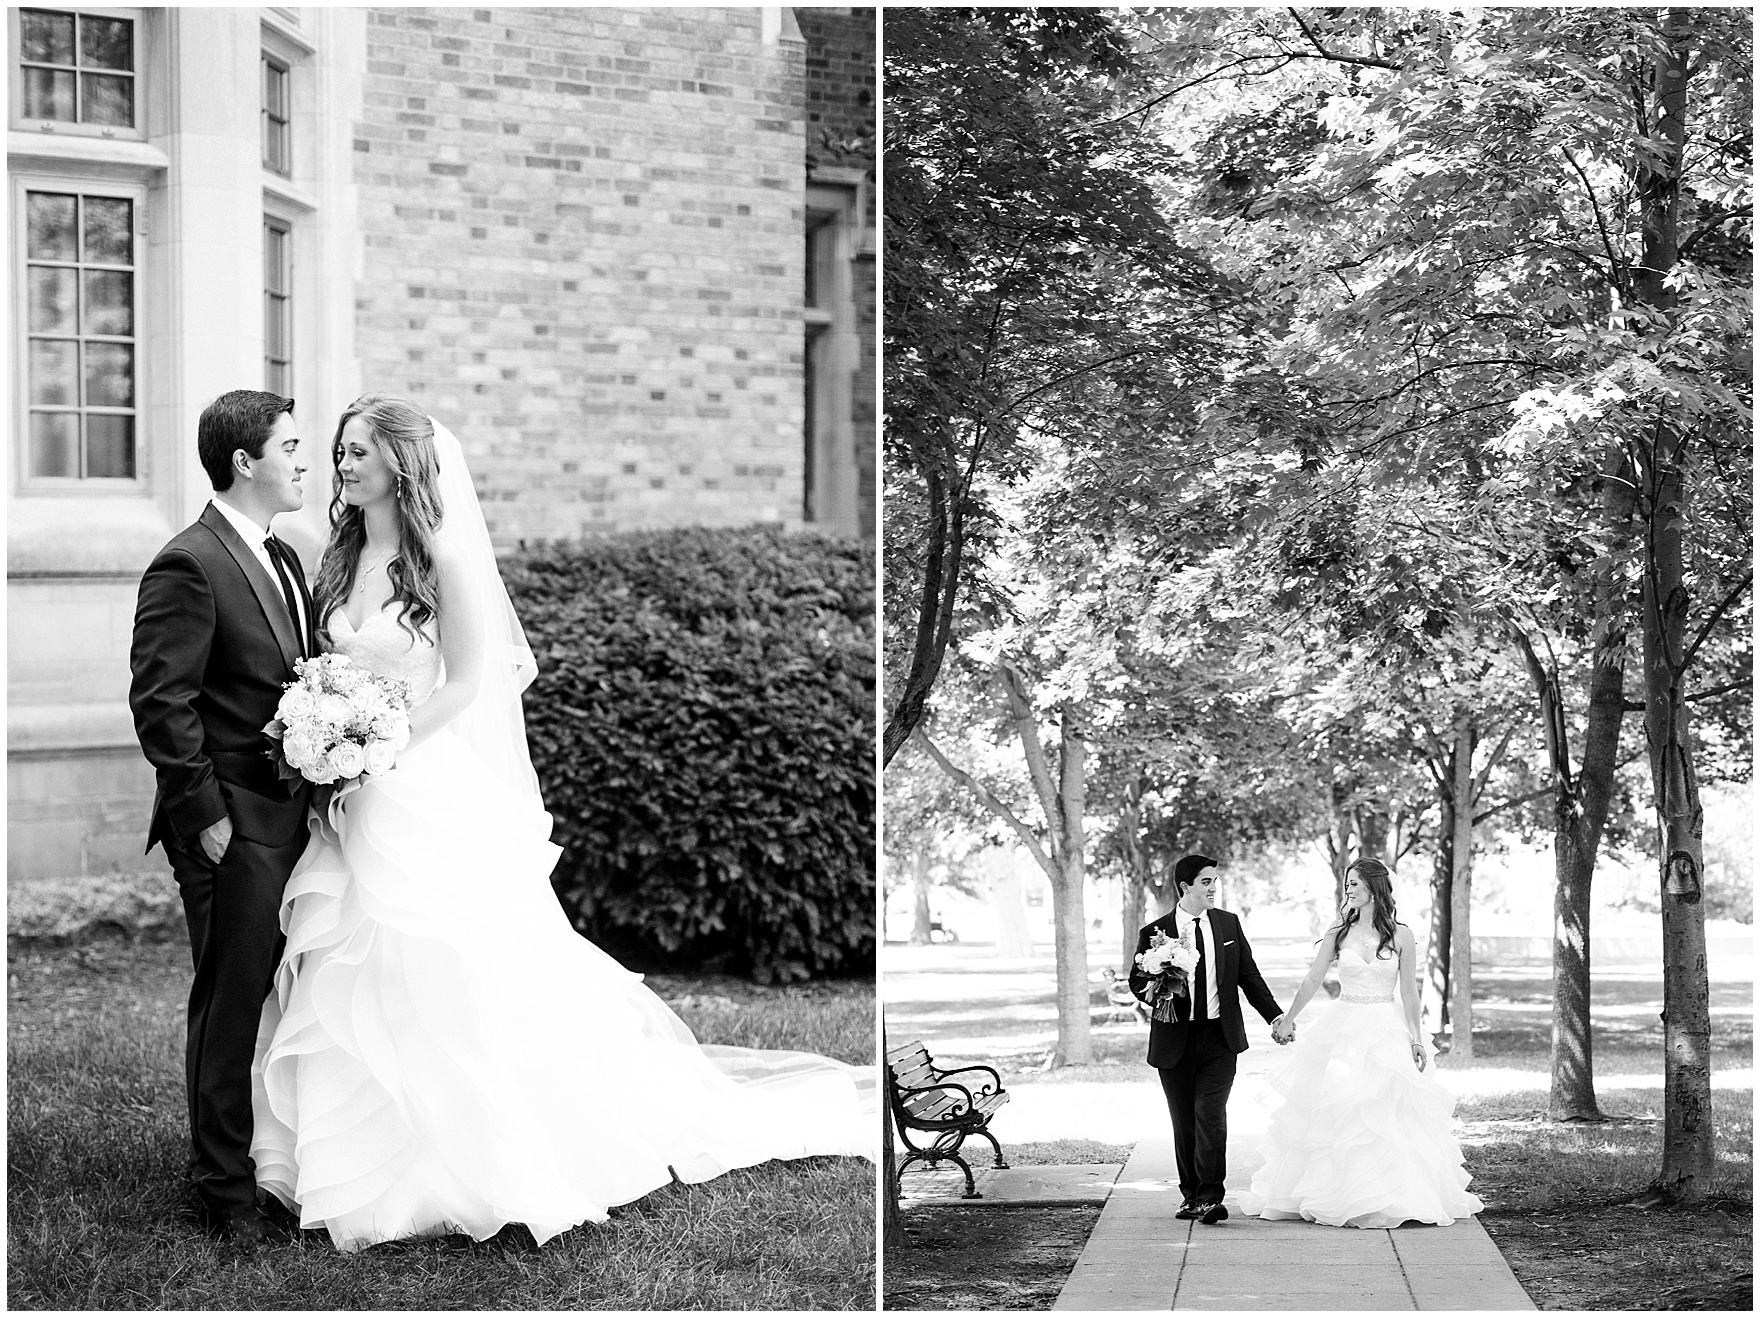 The bride and groom pose for portraits on campus during a University of Notre Dame wedding.